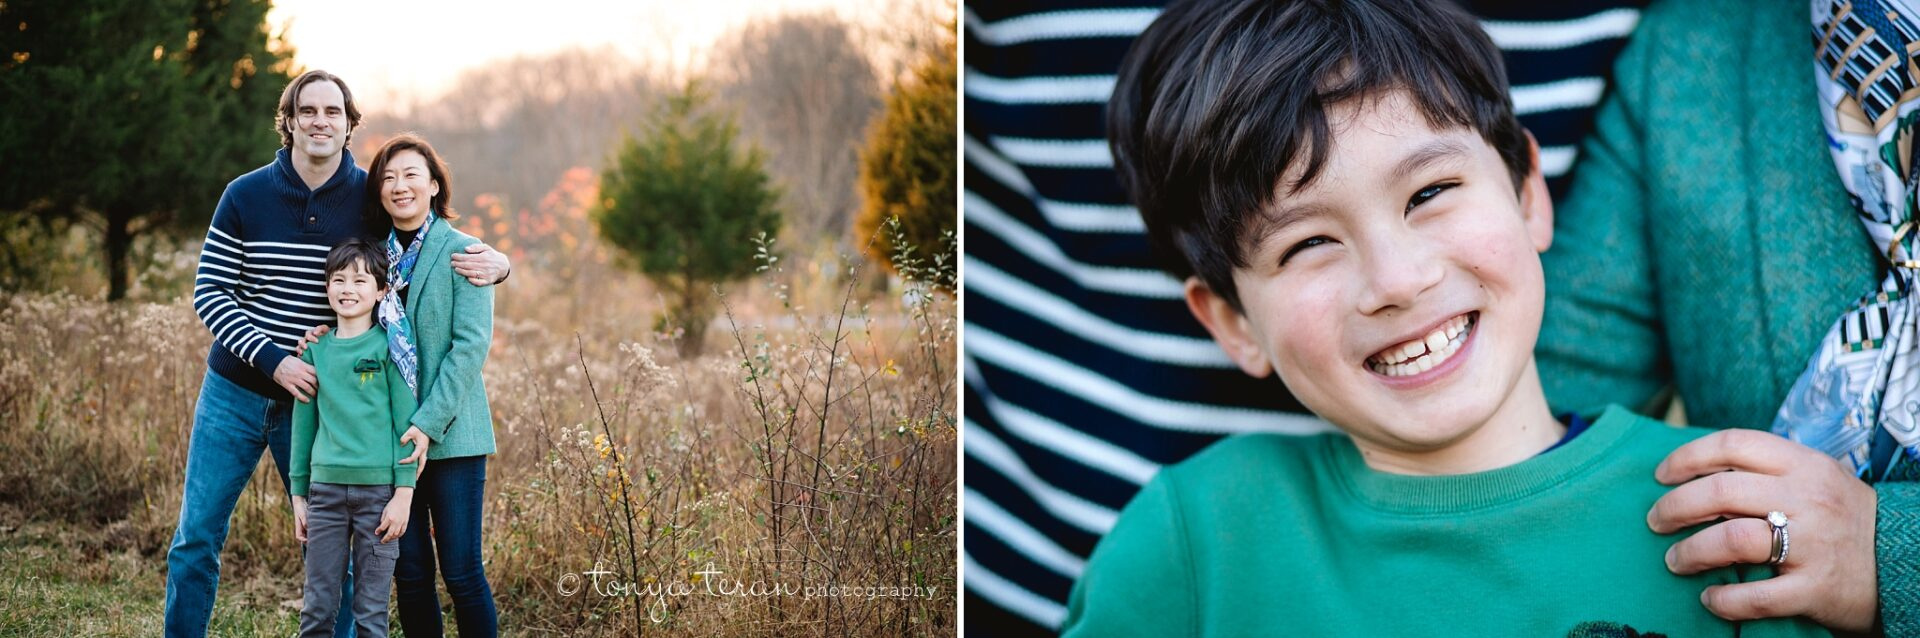 photographing-families-safely-during-covid-19-policies-dc-family-photographer